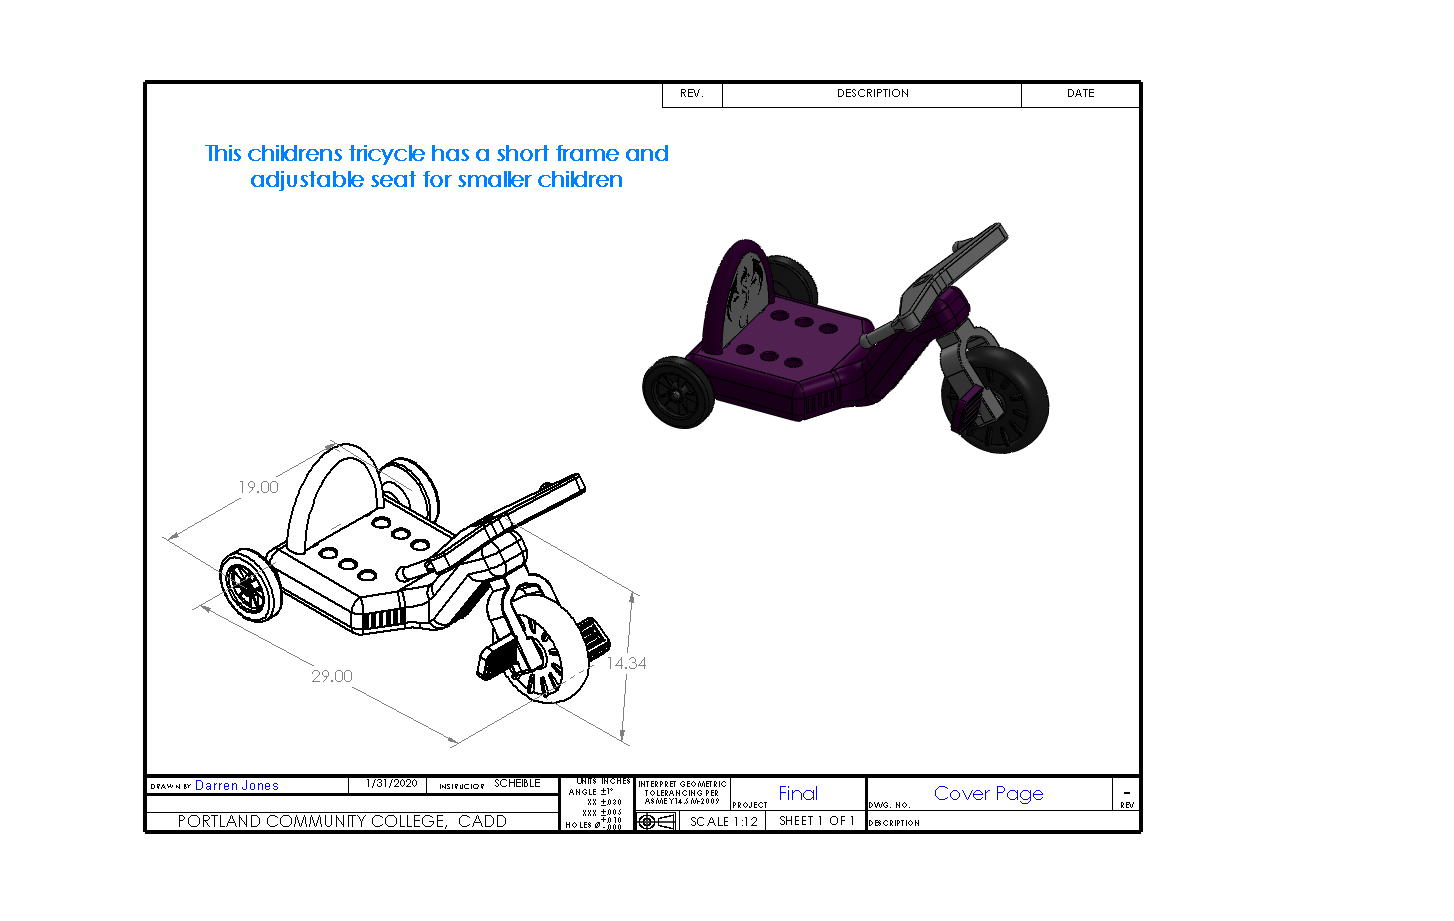 power wheel cover page